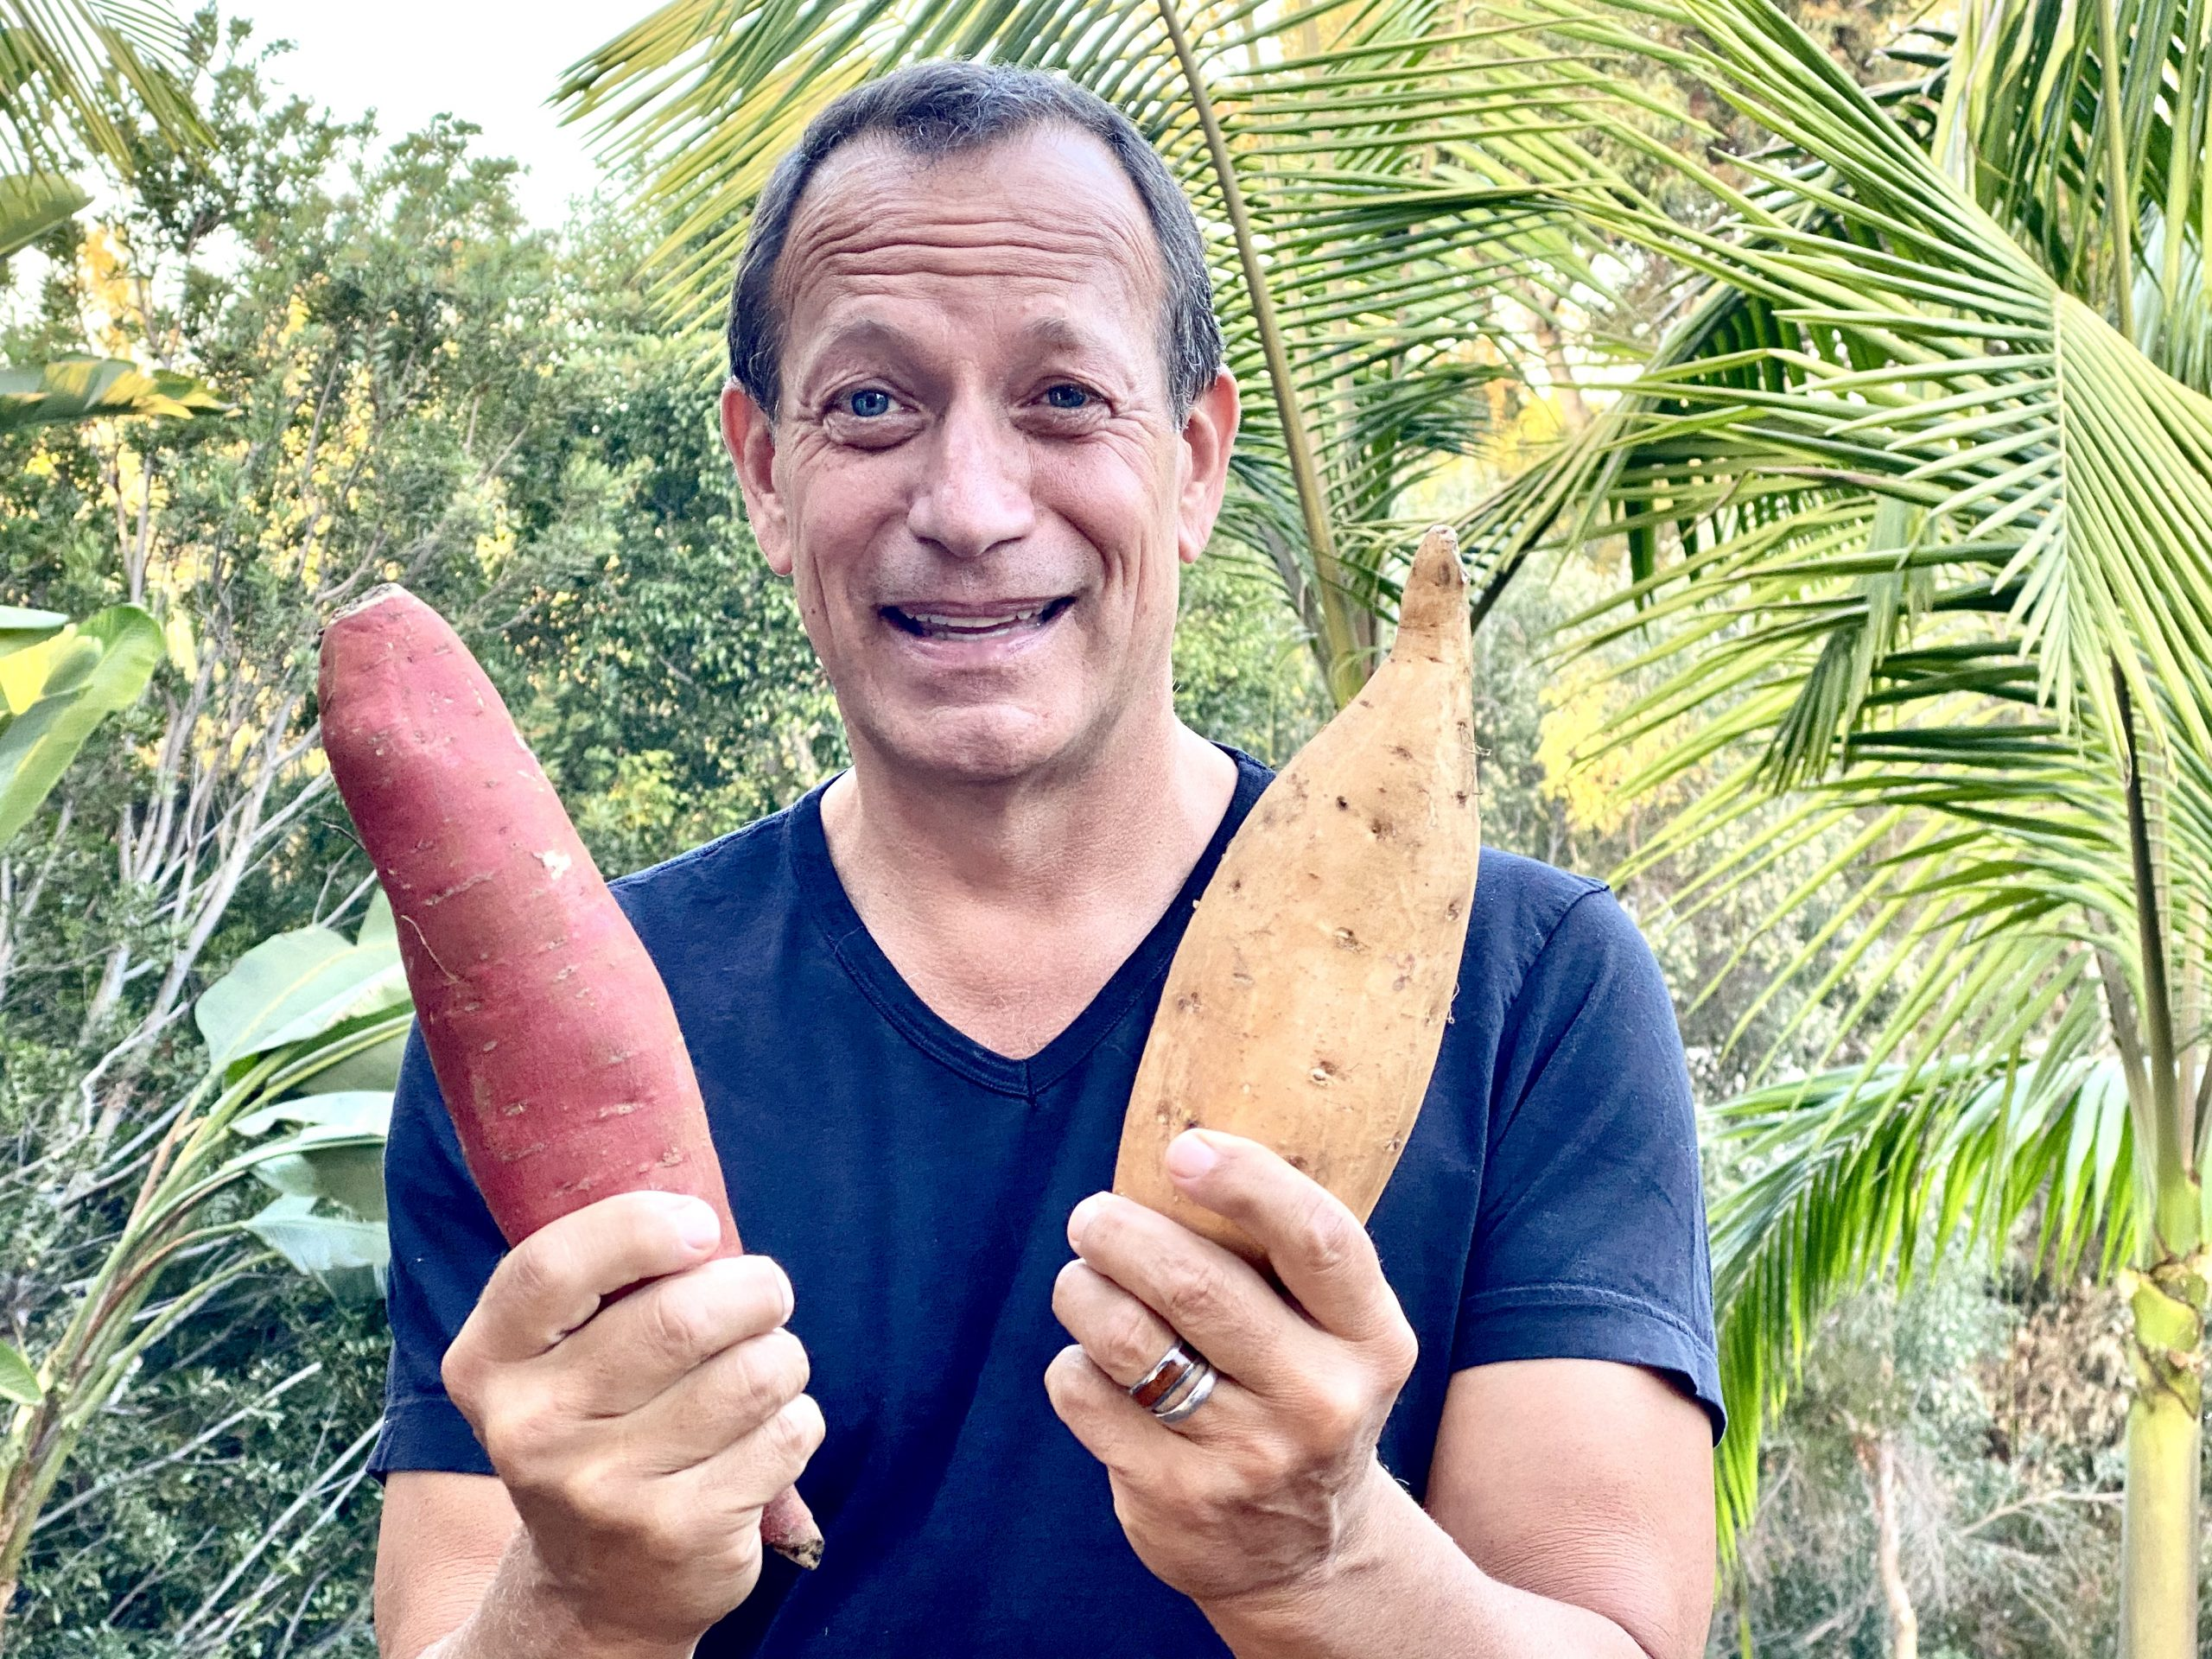 Man holding a sweet potato and a yam